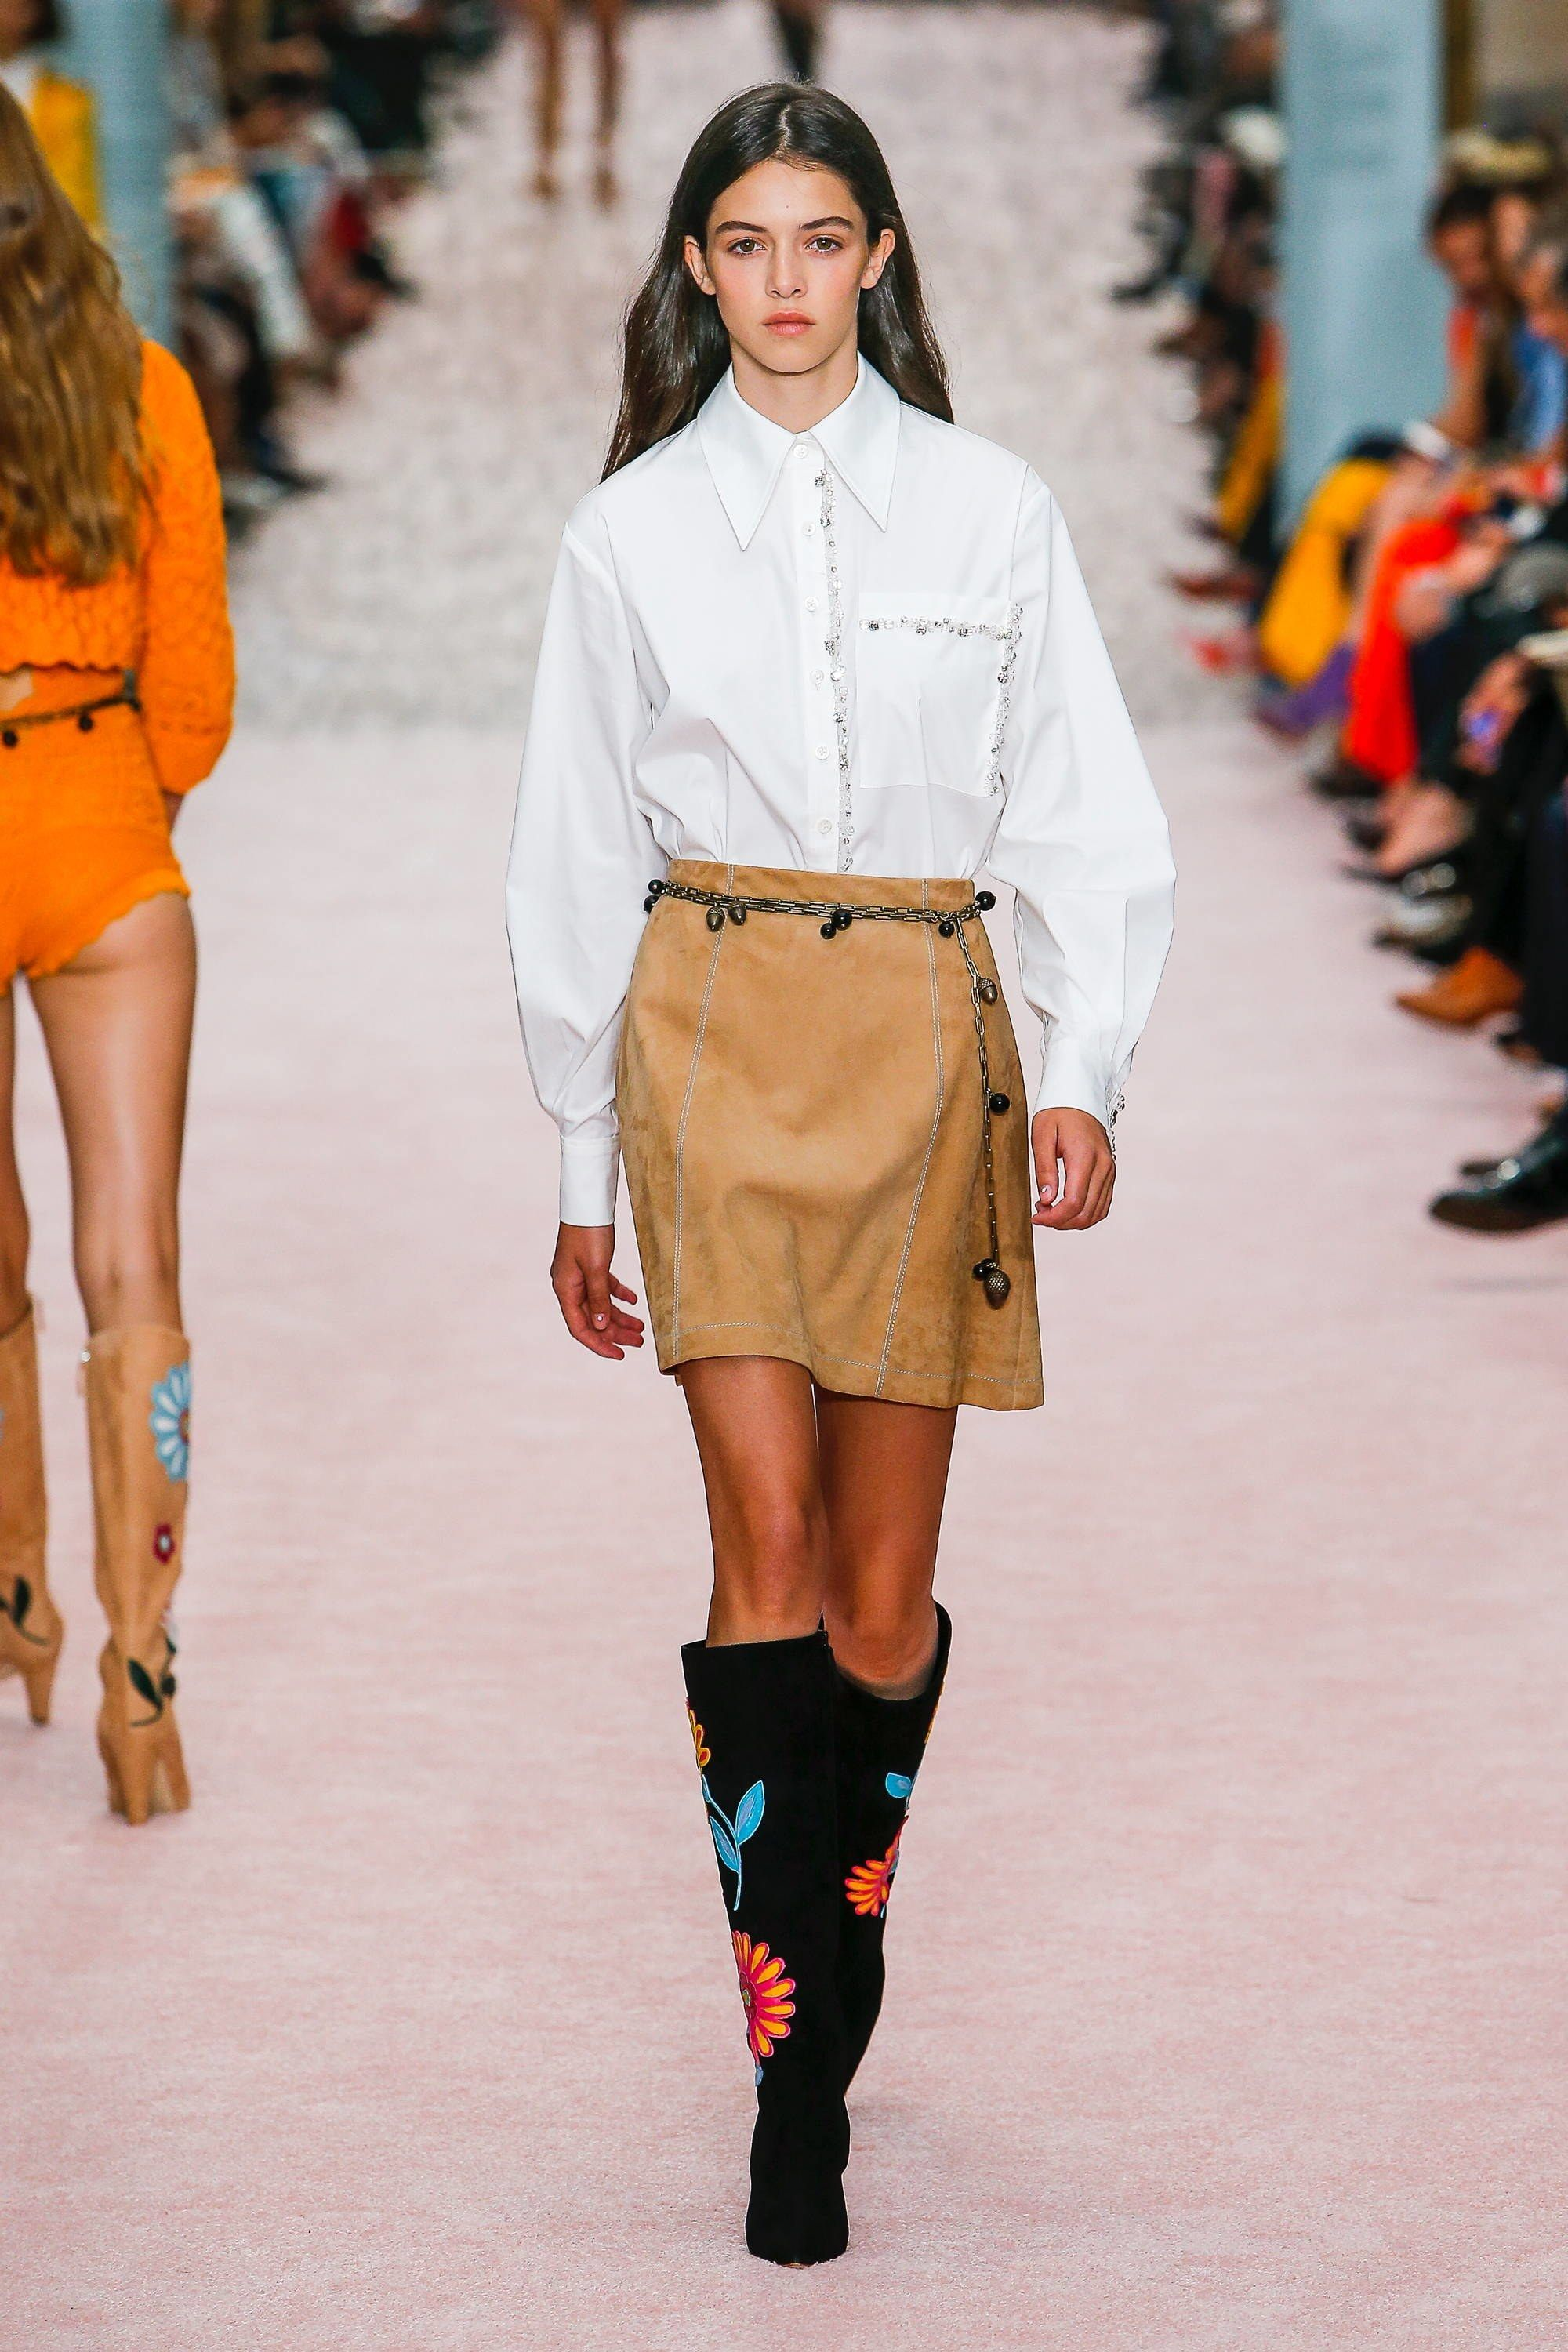 7 Covetable Spring 2019 Runway Inspired Fashions to Snag Up Now